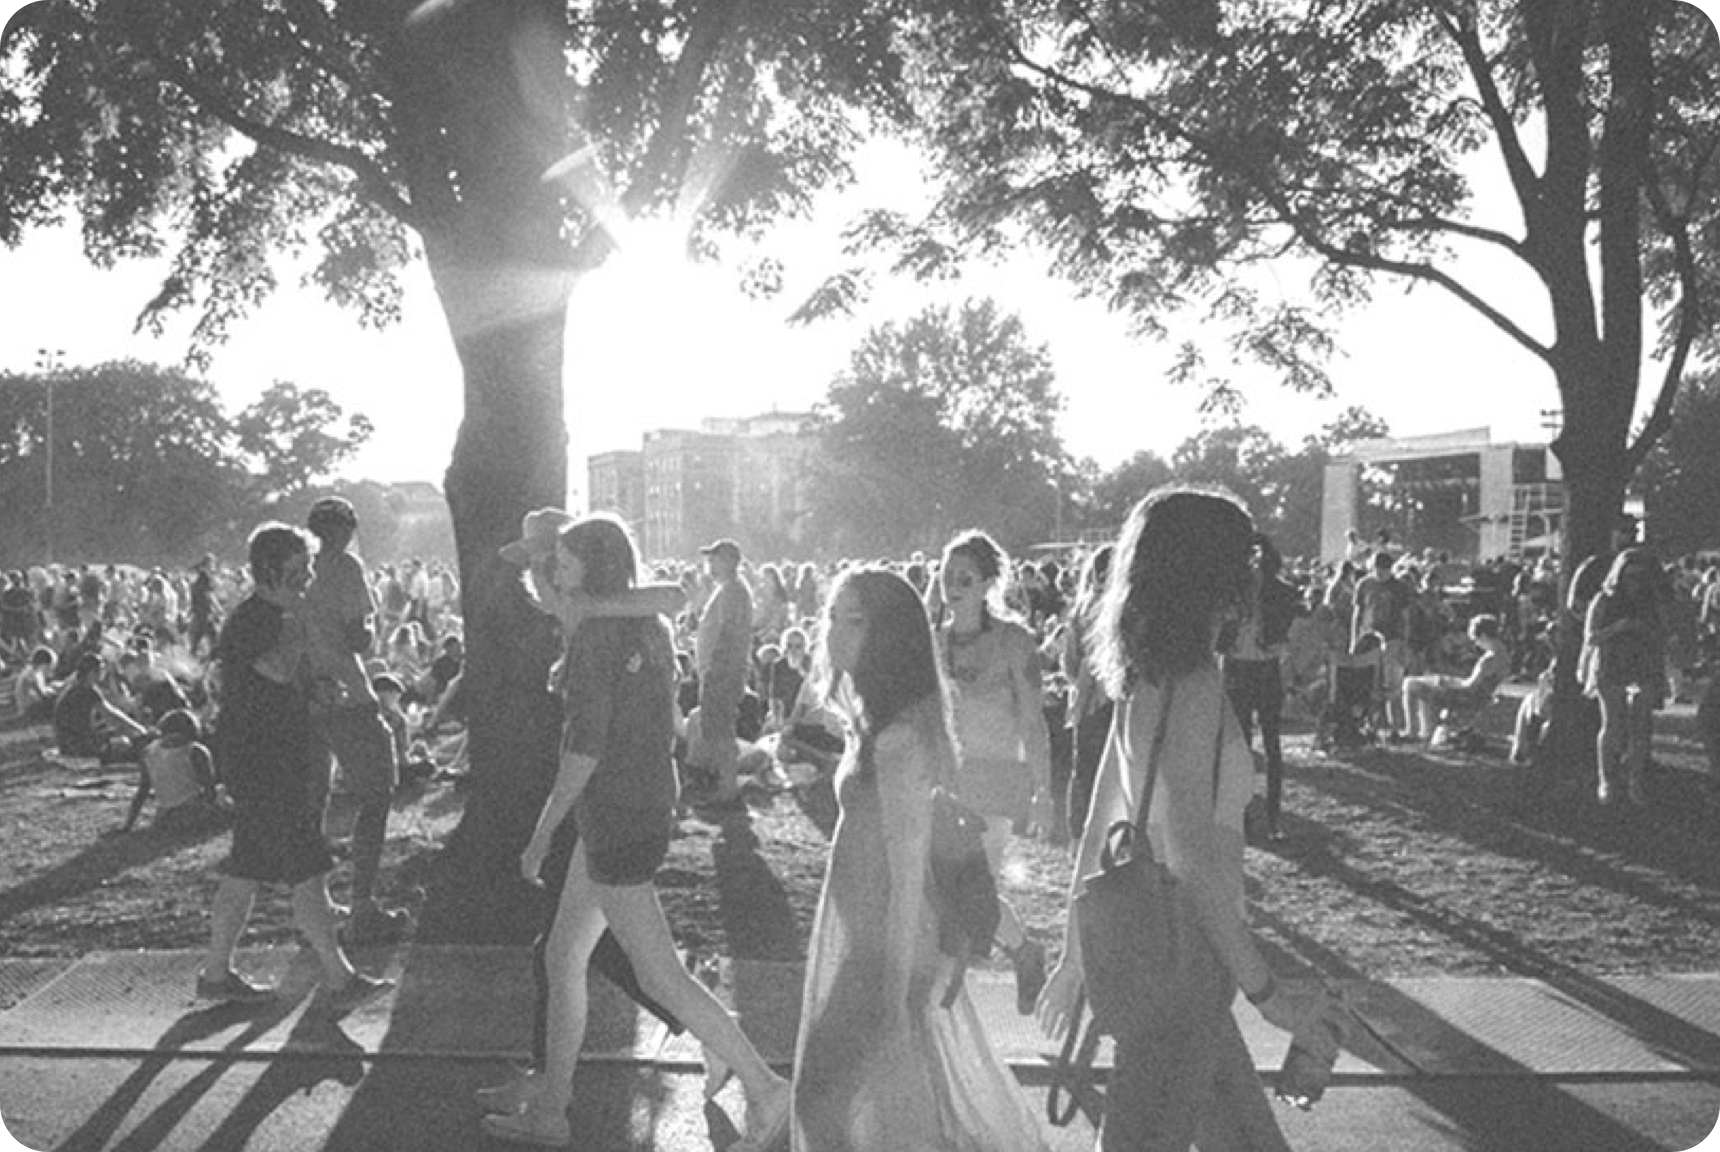 Crowd of people walking amongst trees with the sun setting in the background